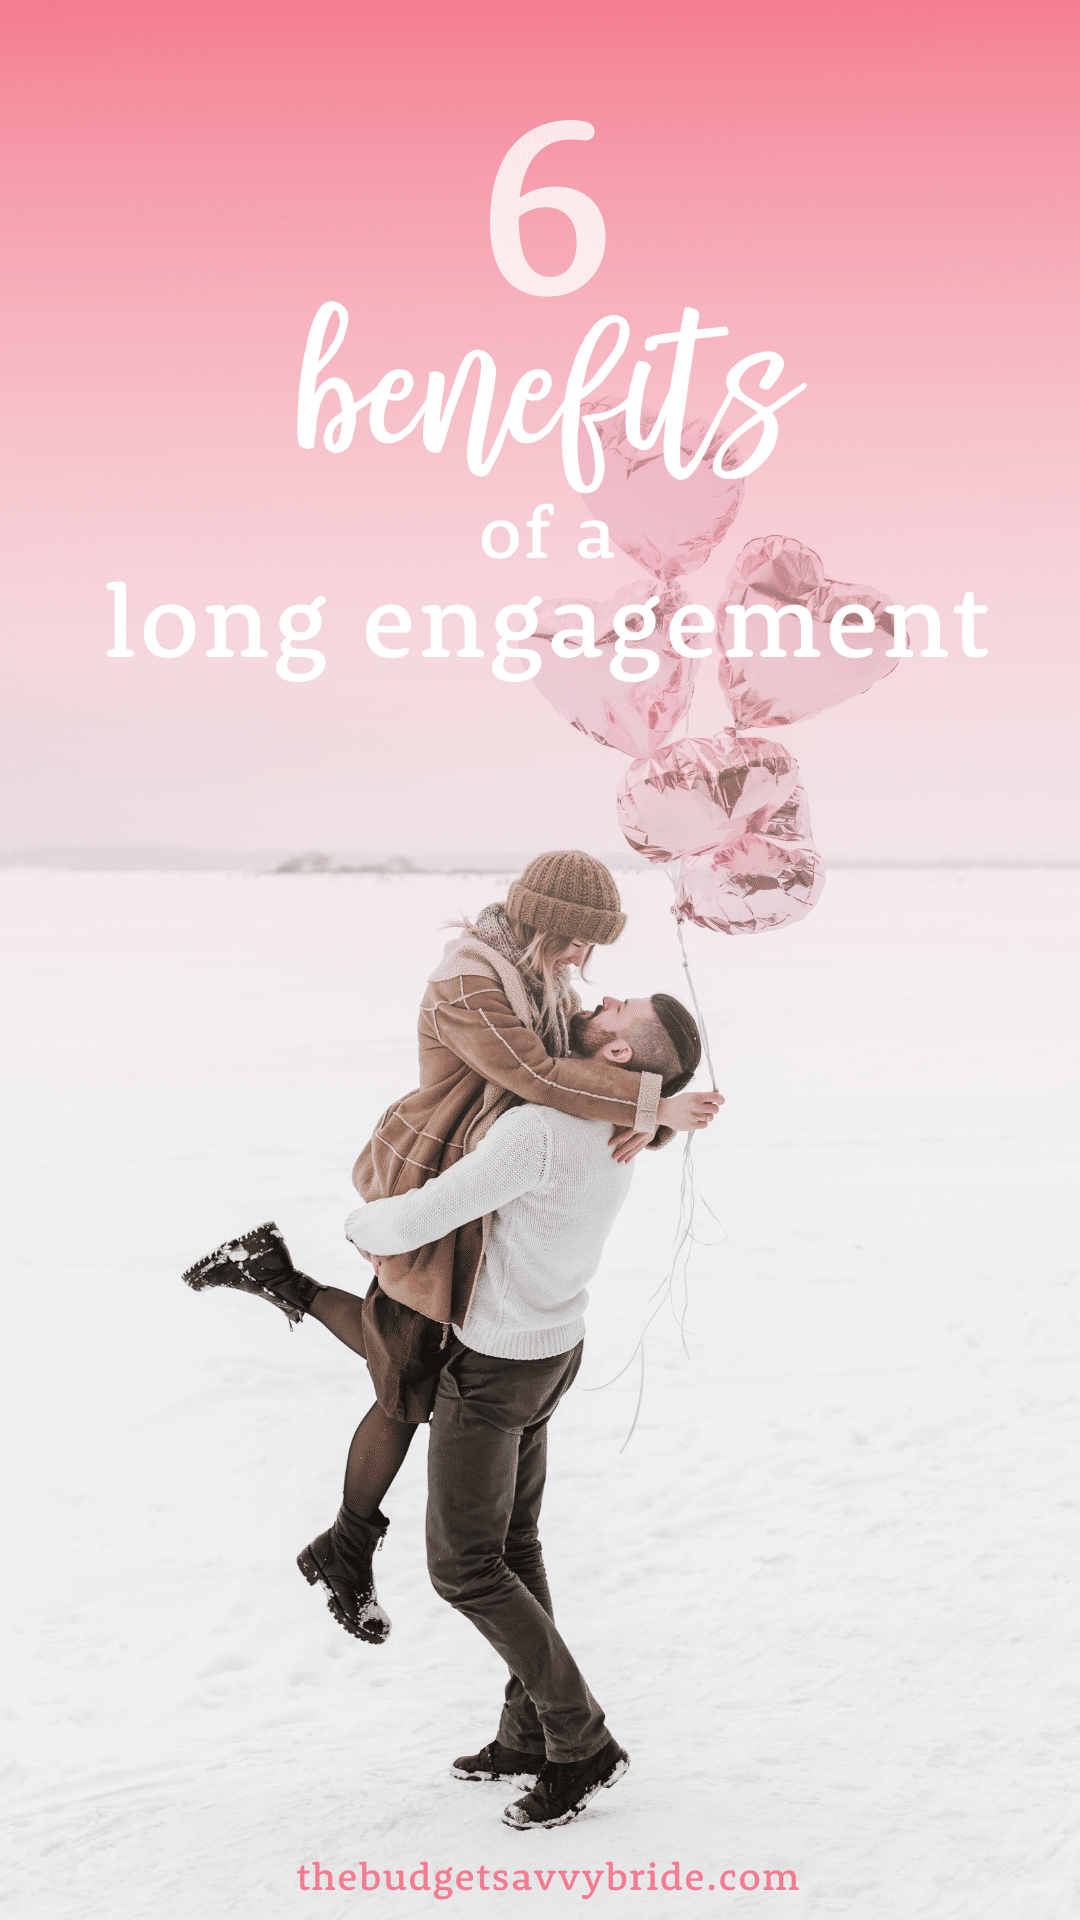 6 benefits of a long engagement